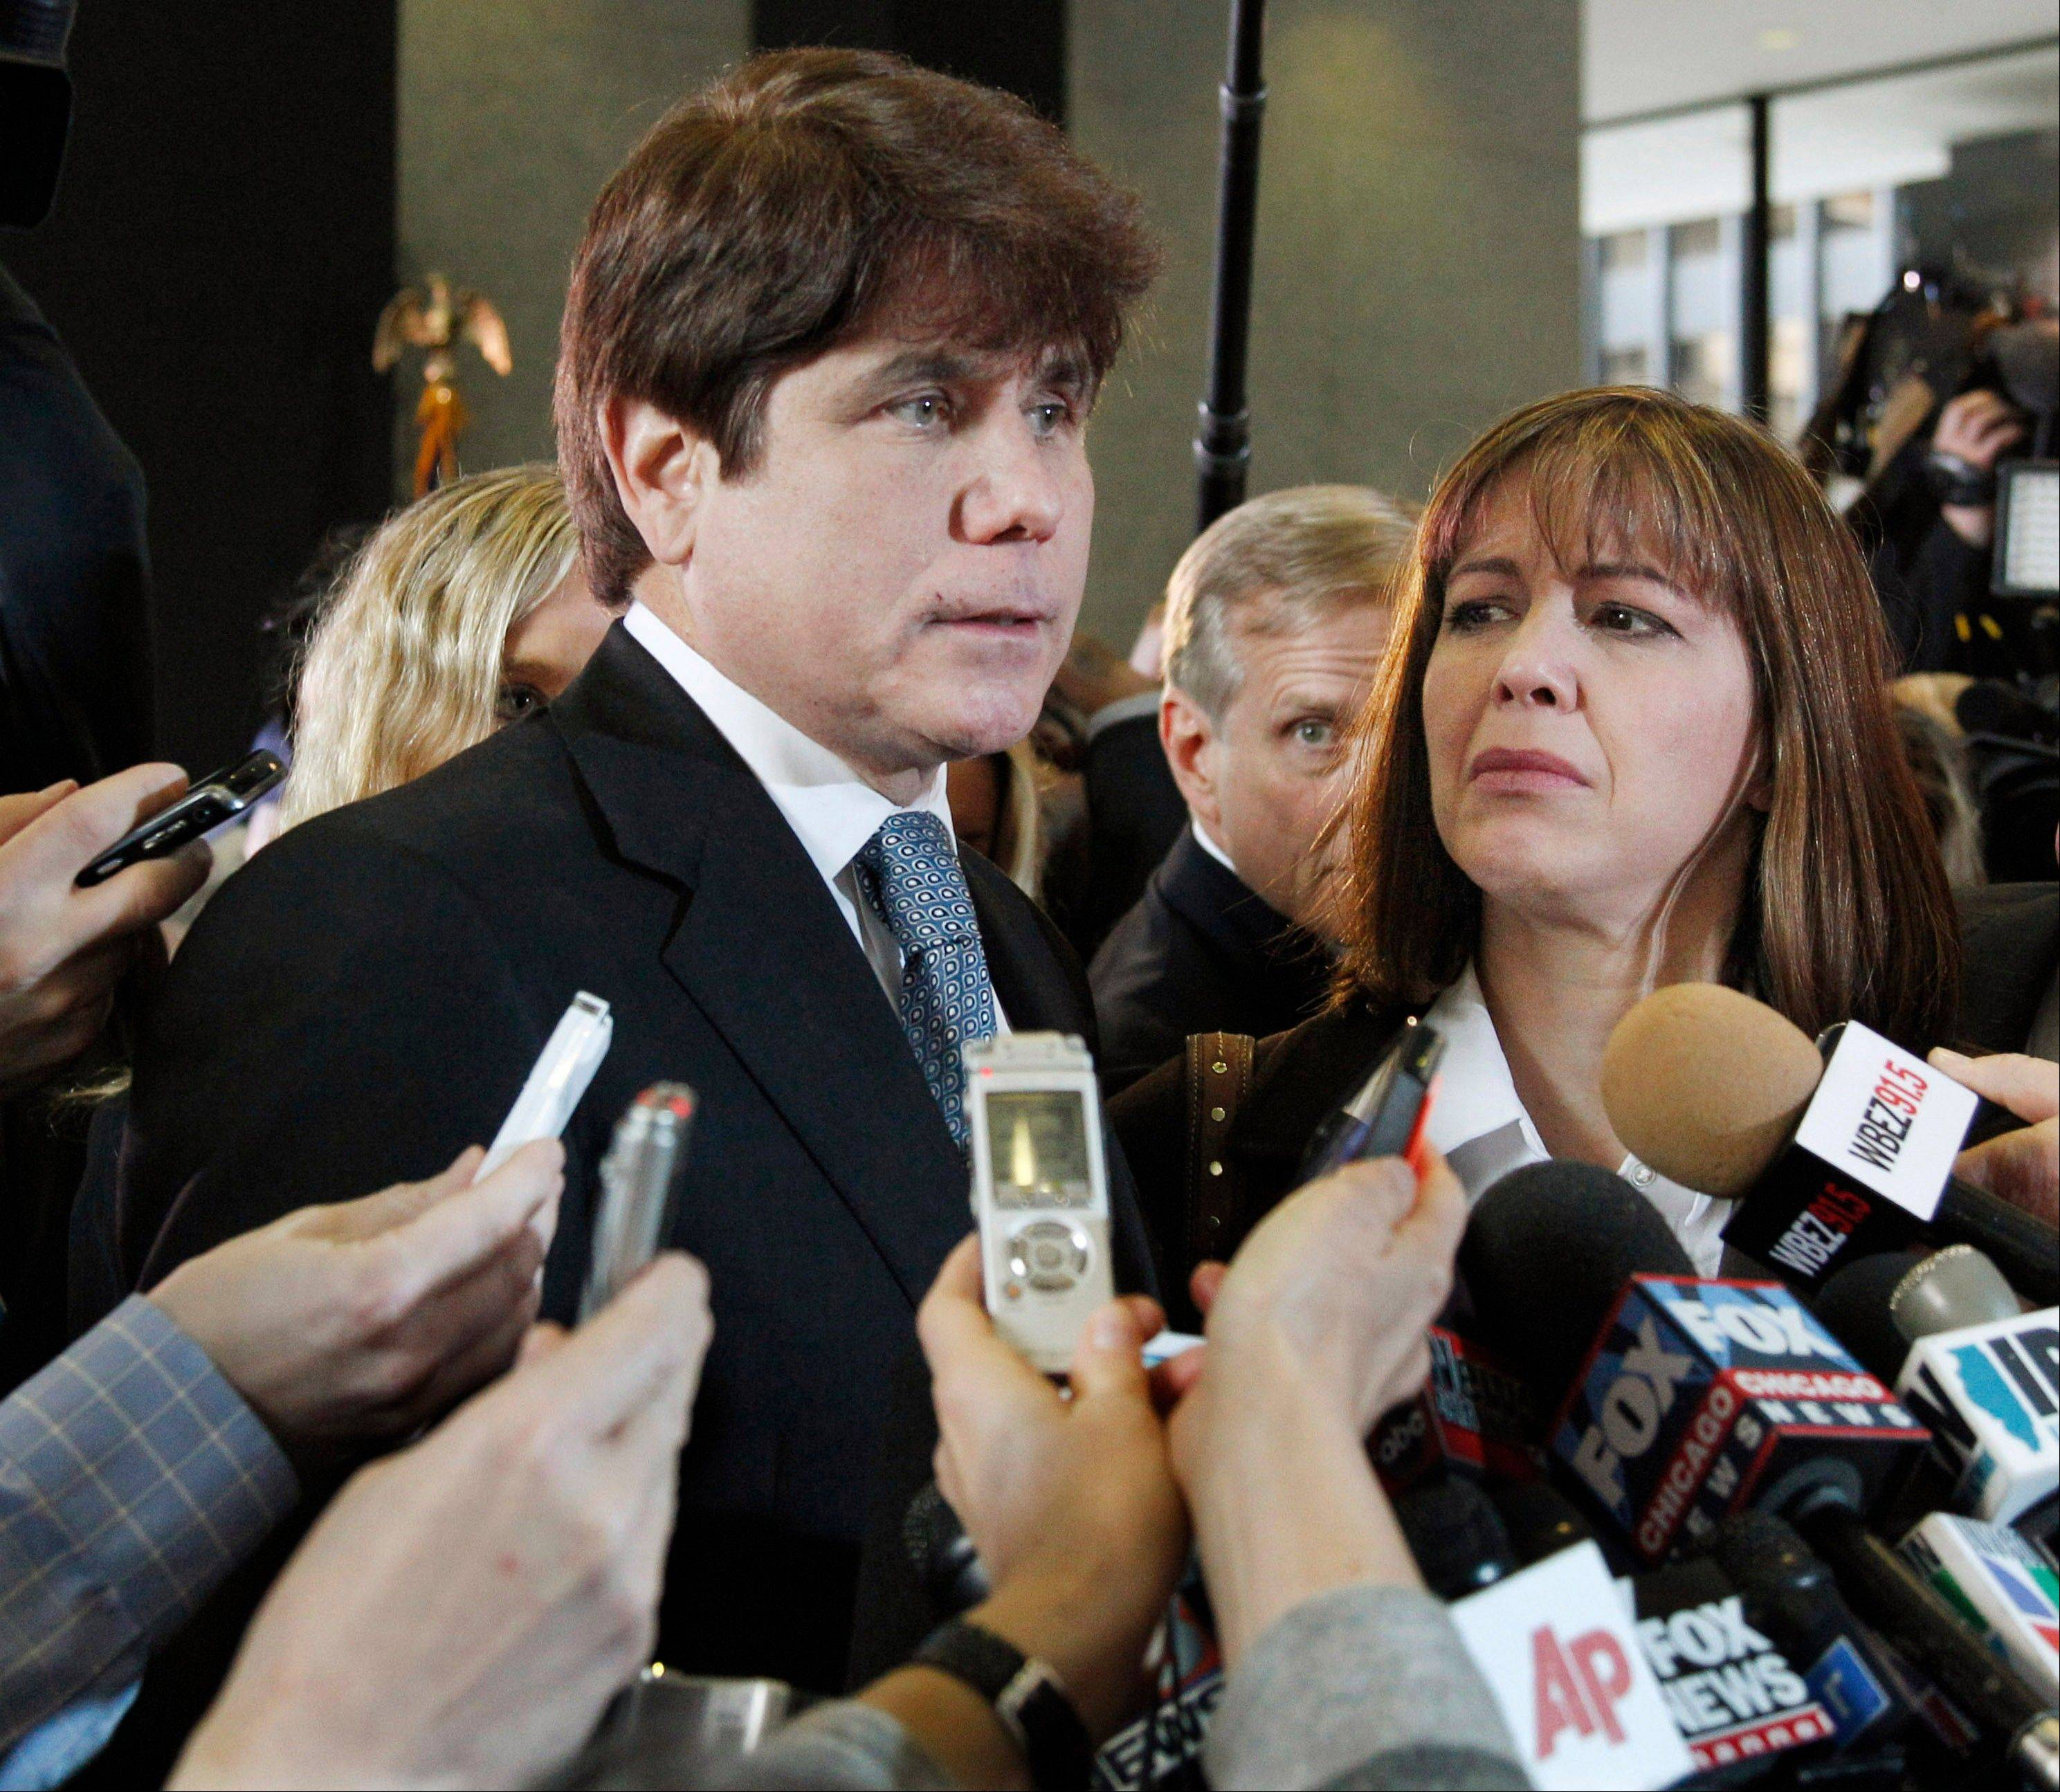 In this Dec. 7, 2011 file photo, former Illinois Gov. Rod Blagojevich, left, speaks to reporters as his wife, Patti, listens at the federal building in Chicago after being sentenced to 14 years on 18 corruption counts, including trying to auction off President Barack Obama's old Senate seat. Blagojevich says he would like to maintain his dignity through the difficult process of leaving his family to report to prison. But as with every other step in the long saga of his corruption scandal, there will be much interest in his final journey from his Chicago home to his expected prison in Colorado. He is scheduled to report on March 15.